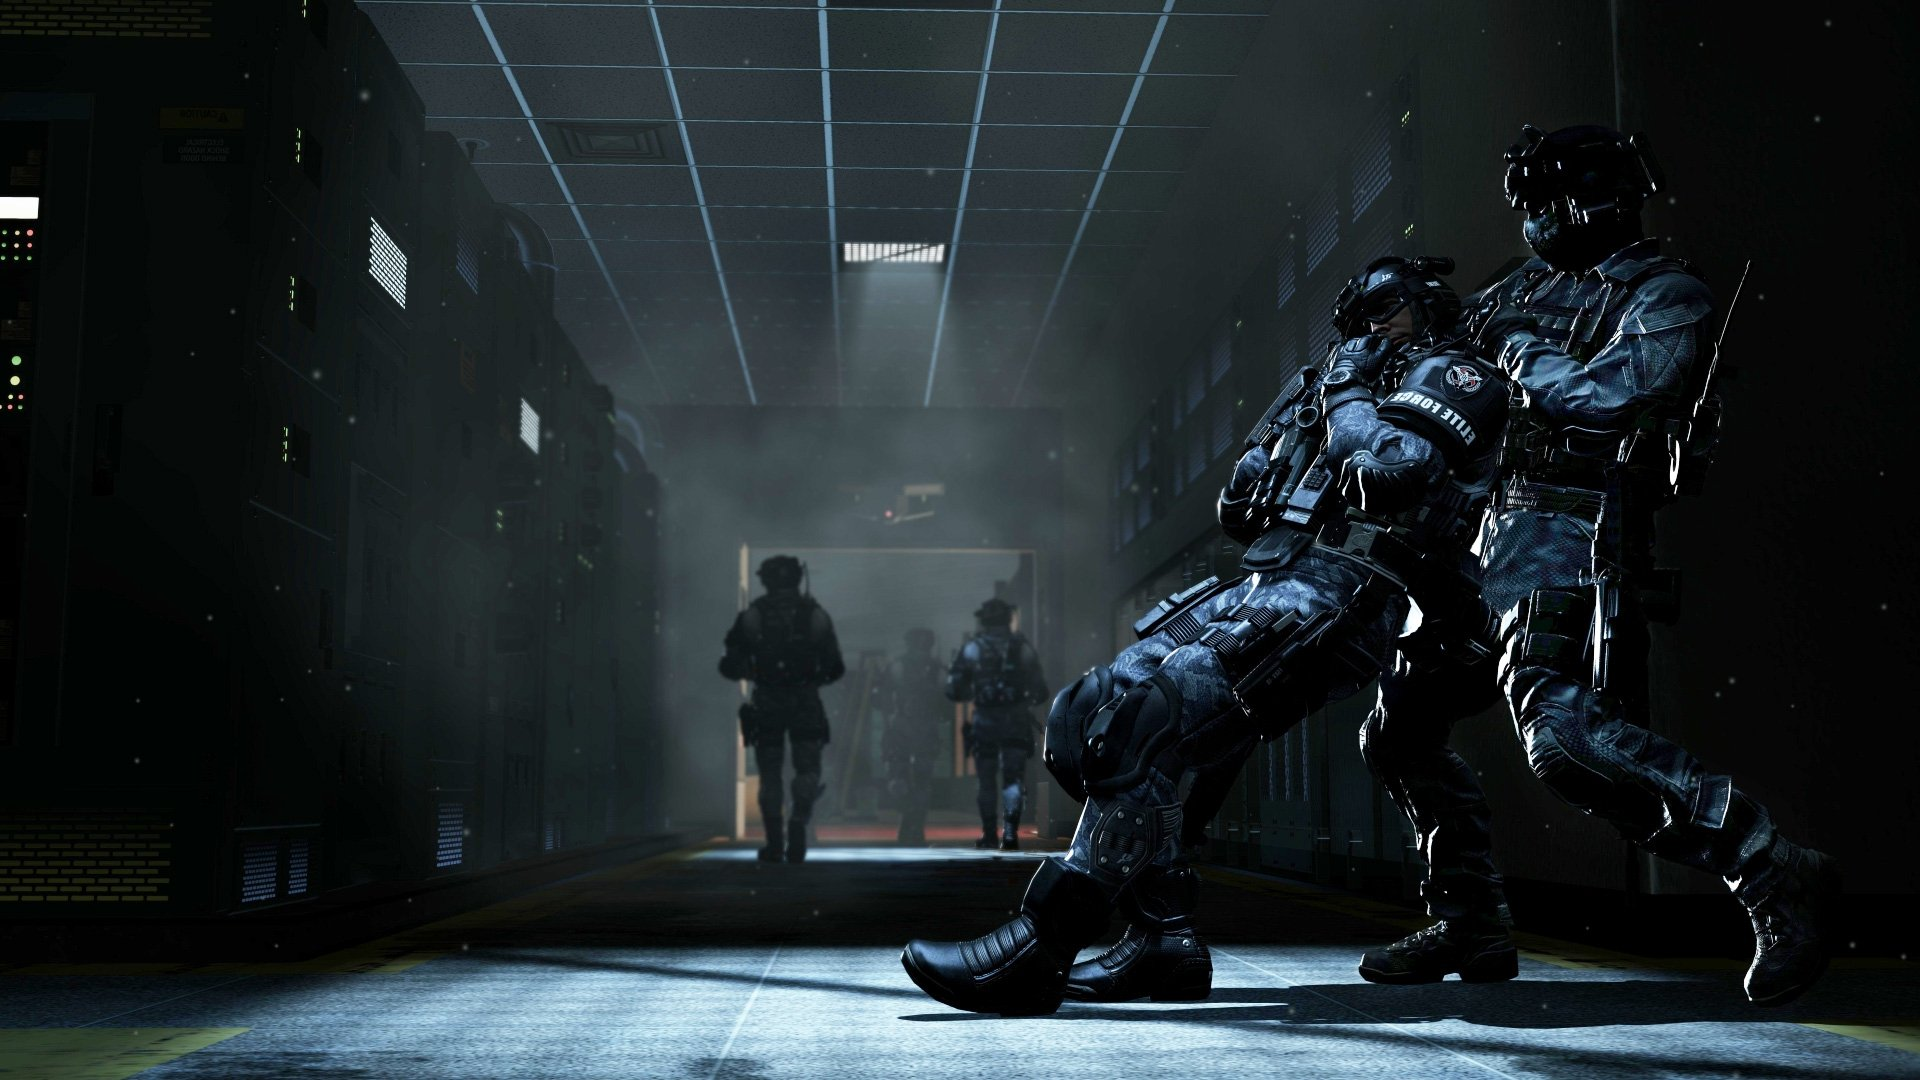 Call Of Duty Ghosts Wallpaper - wallpaper hd